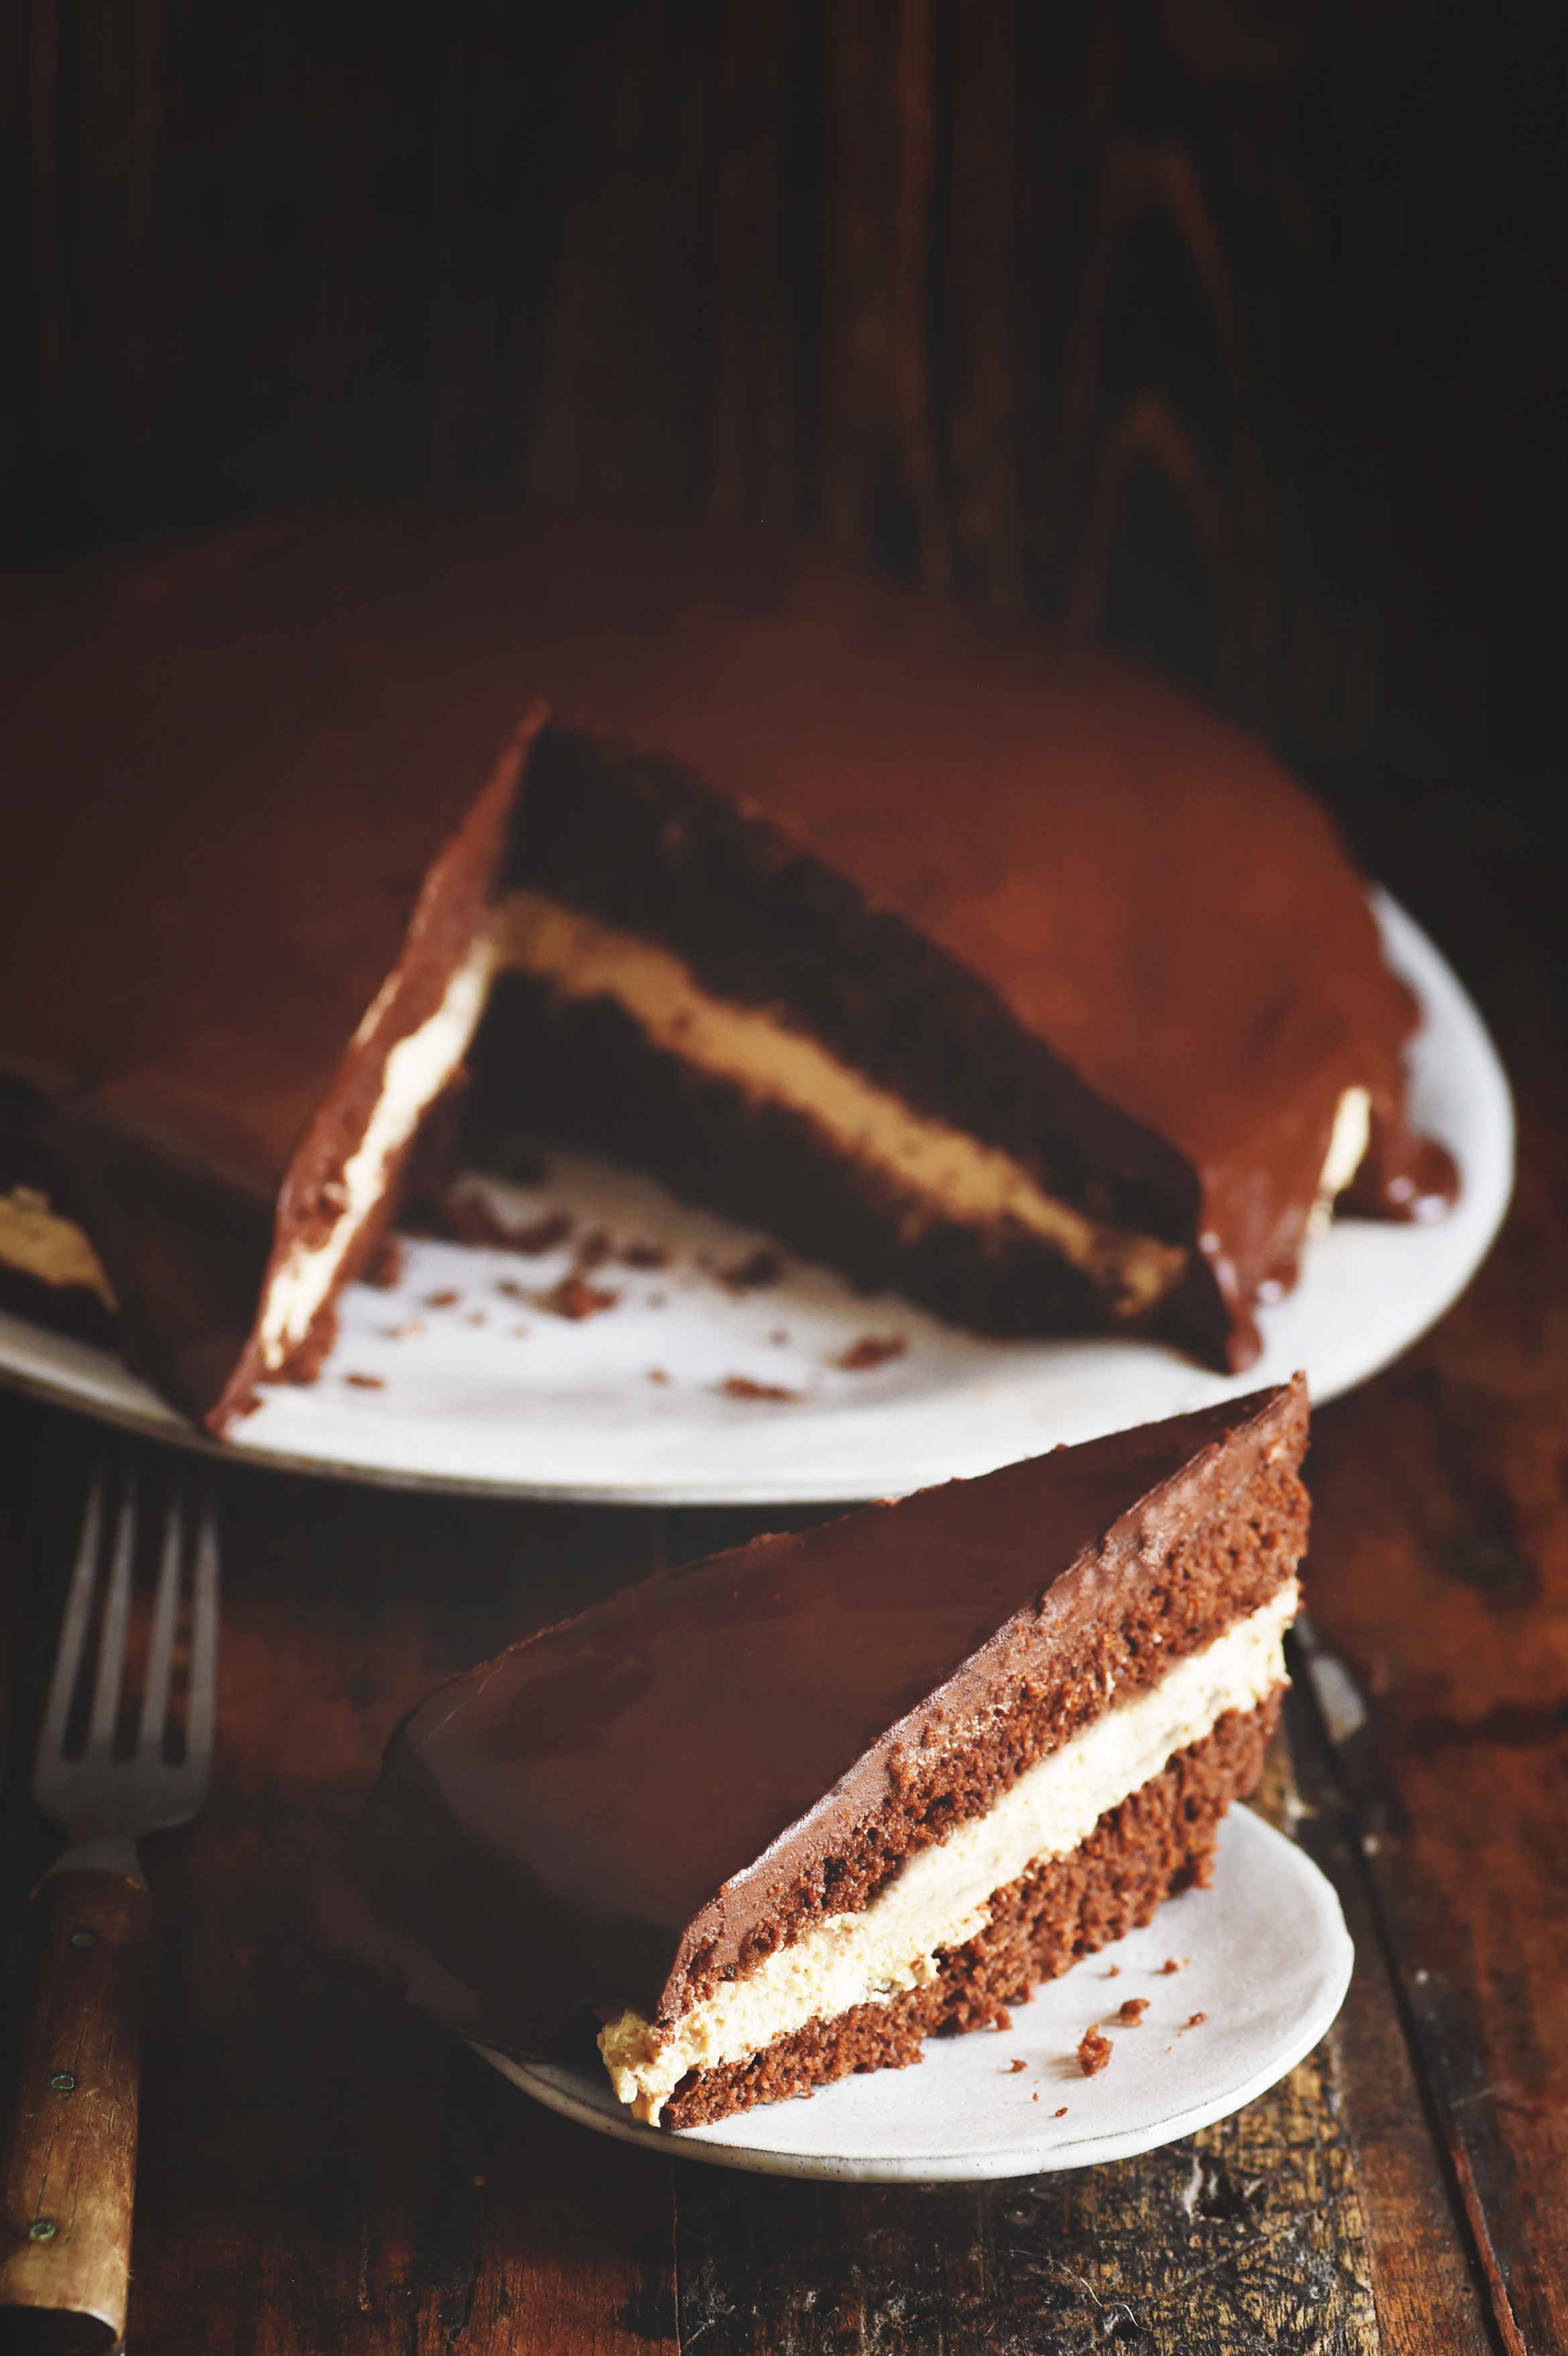 Low-Carb Chocolate Latte Dream Cake one piece on a plate with the cake behind.